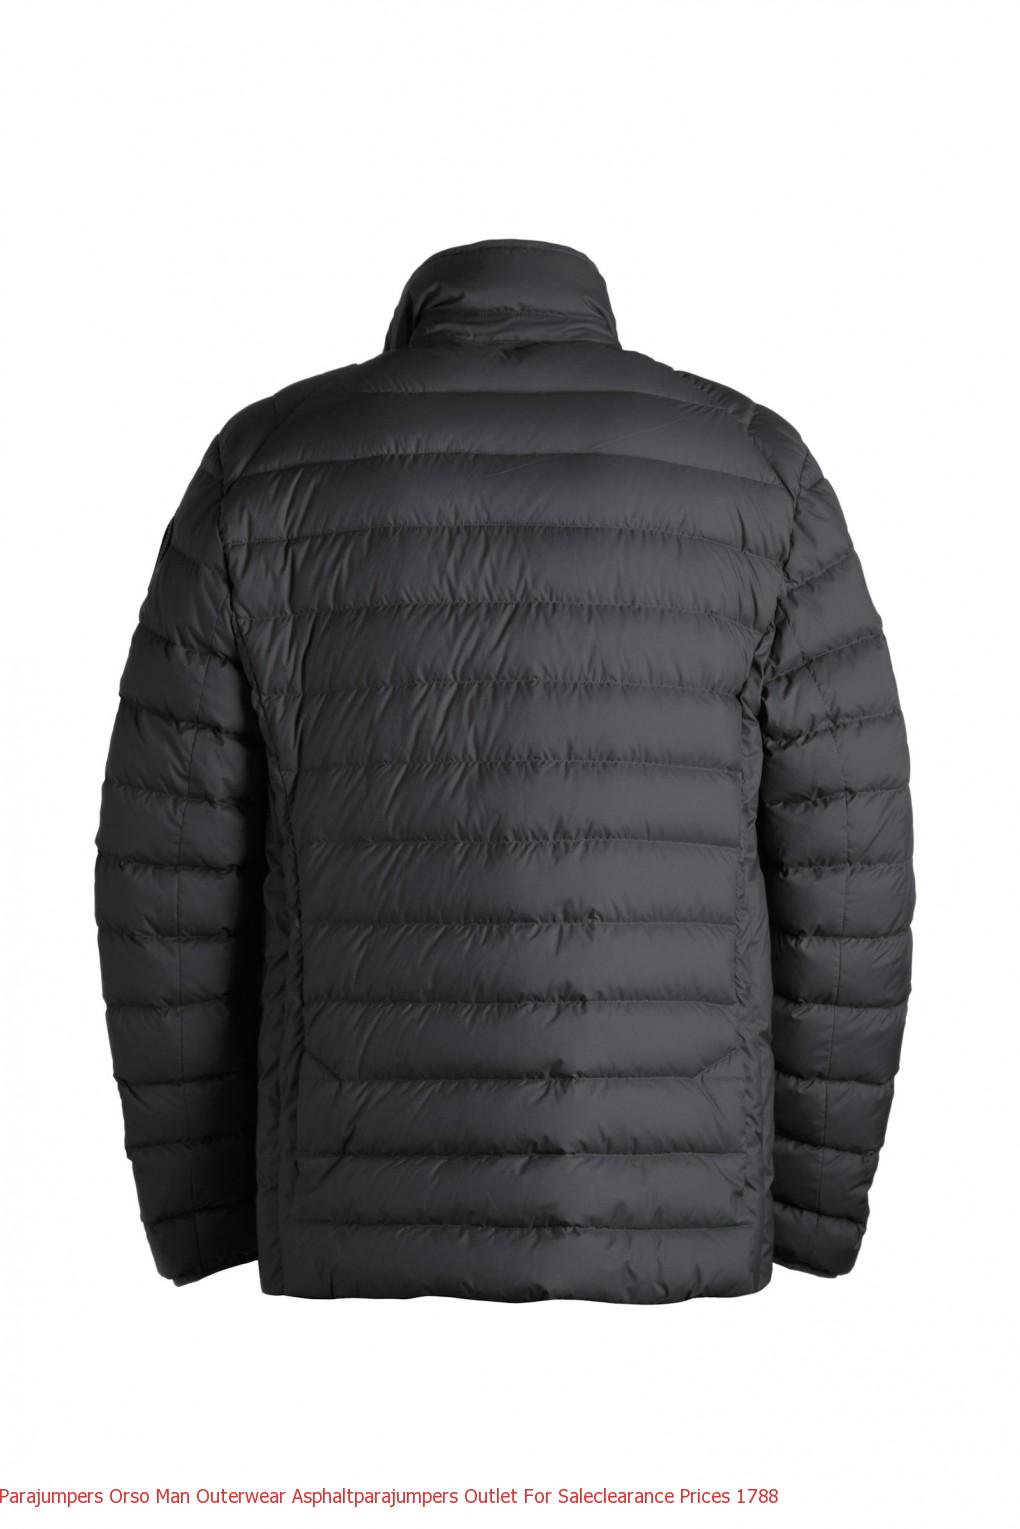 Parajumpers Orso Man Outerwear Asphaltparajumpers Outlet For Saleclearance Prices 1790